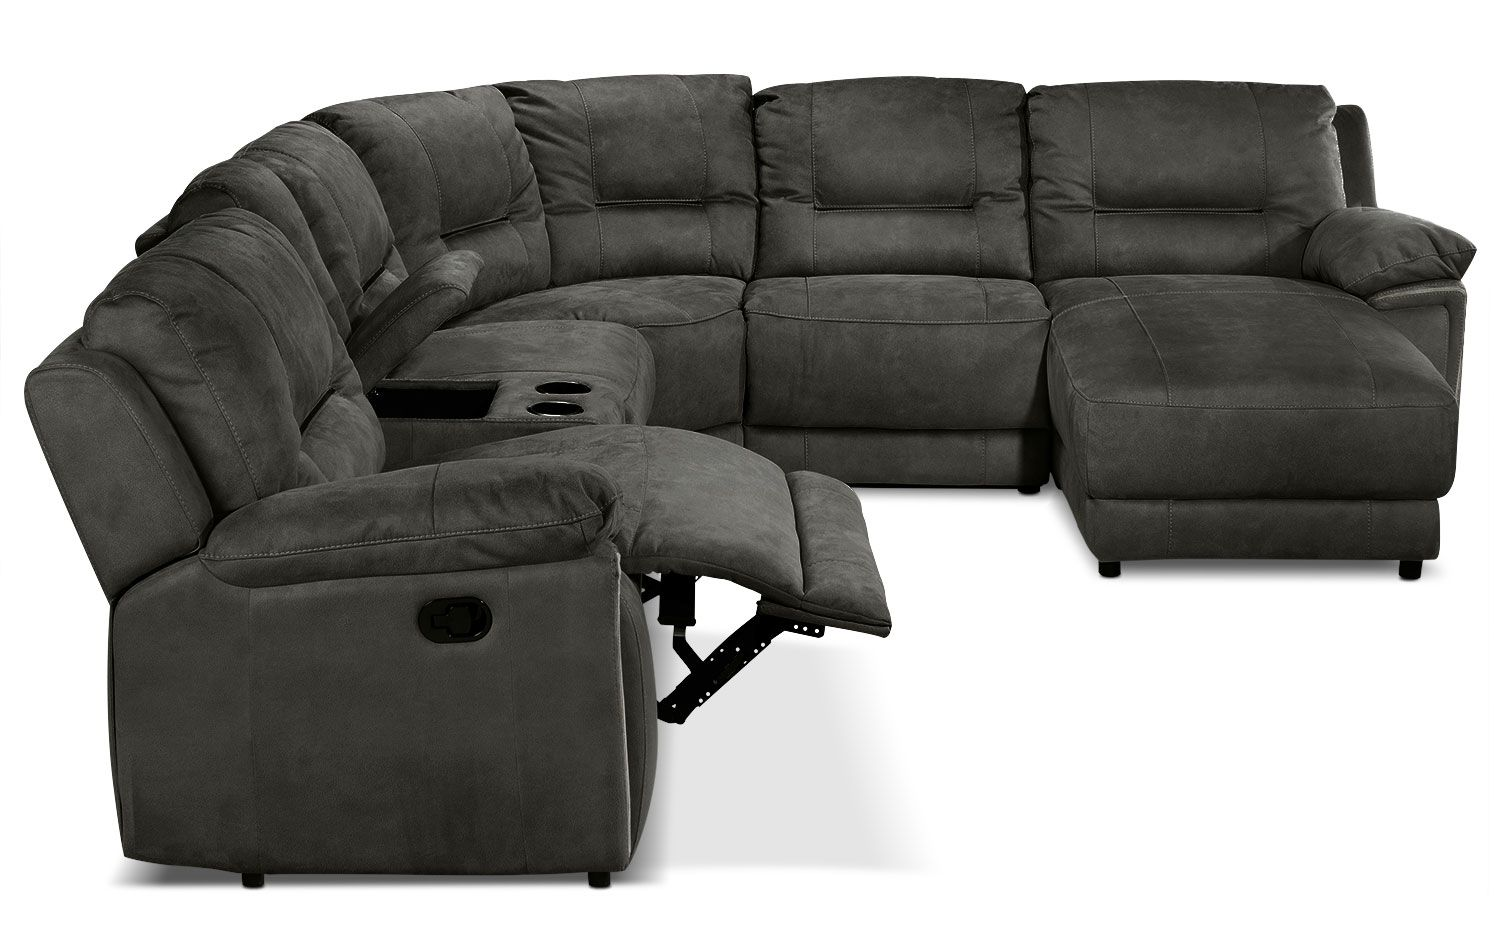 sofa theater pasadena motion set comforts of home the easy to coordinate deep grey colour